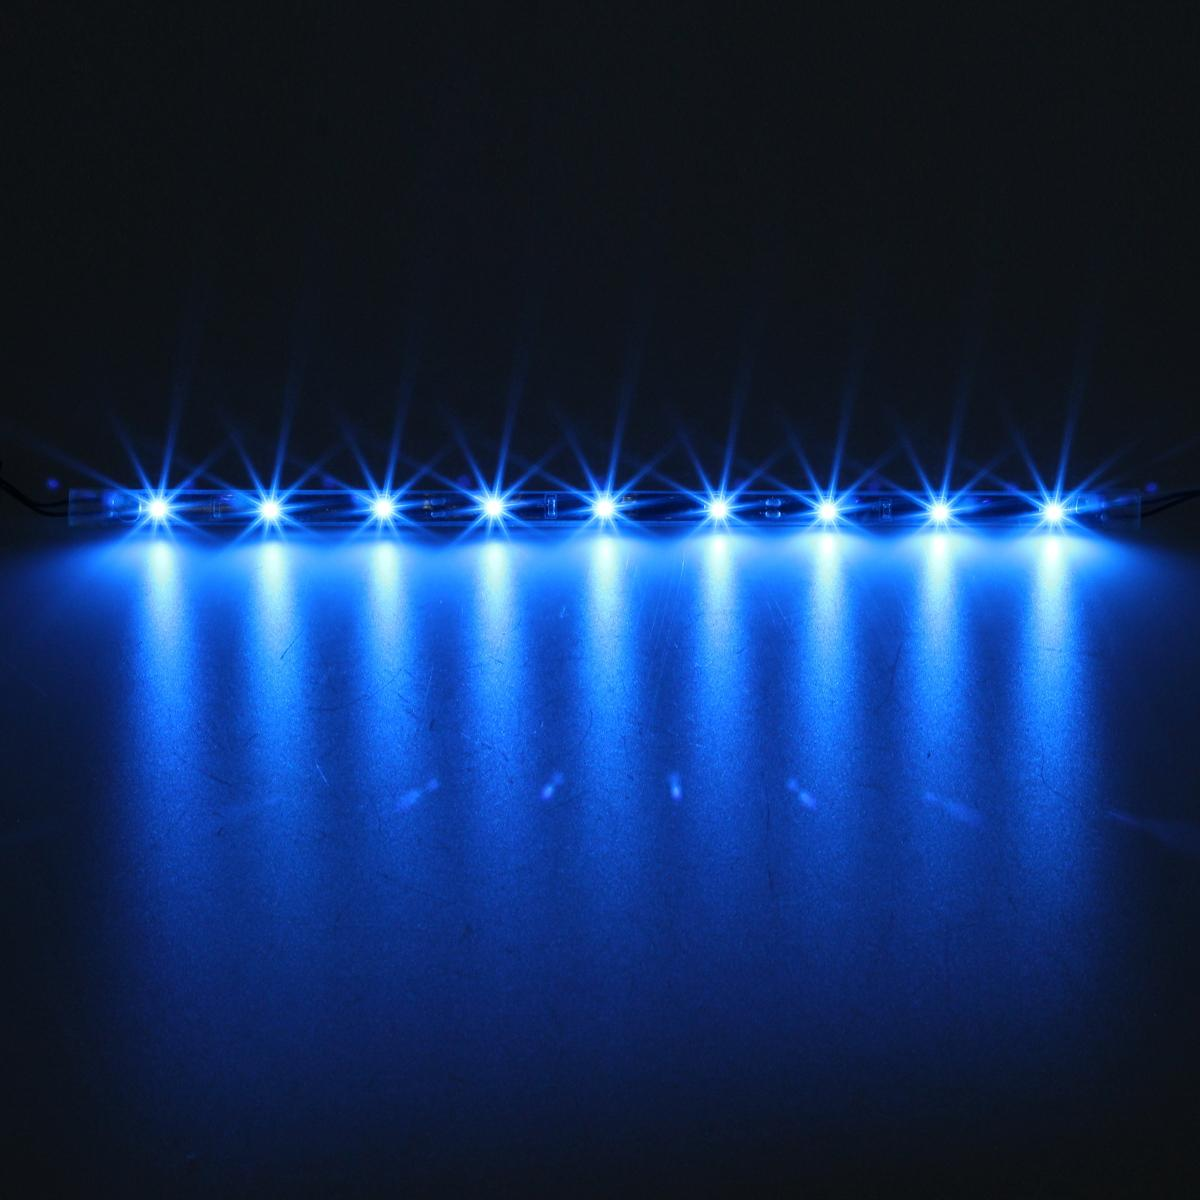 14pcs bright blue 3 mode 3528 led underglow under light neon light strip bar kit ebay - Underglow neon ...